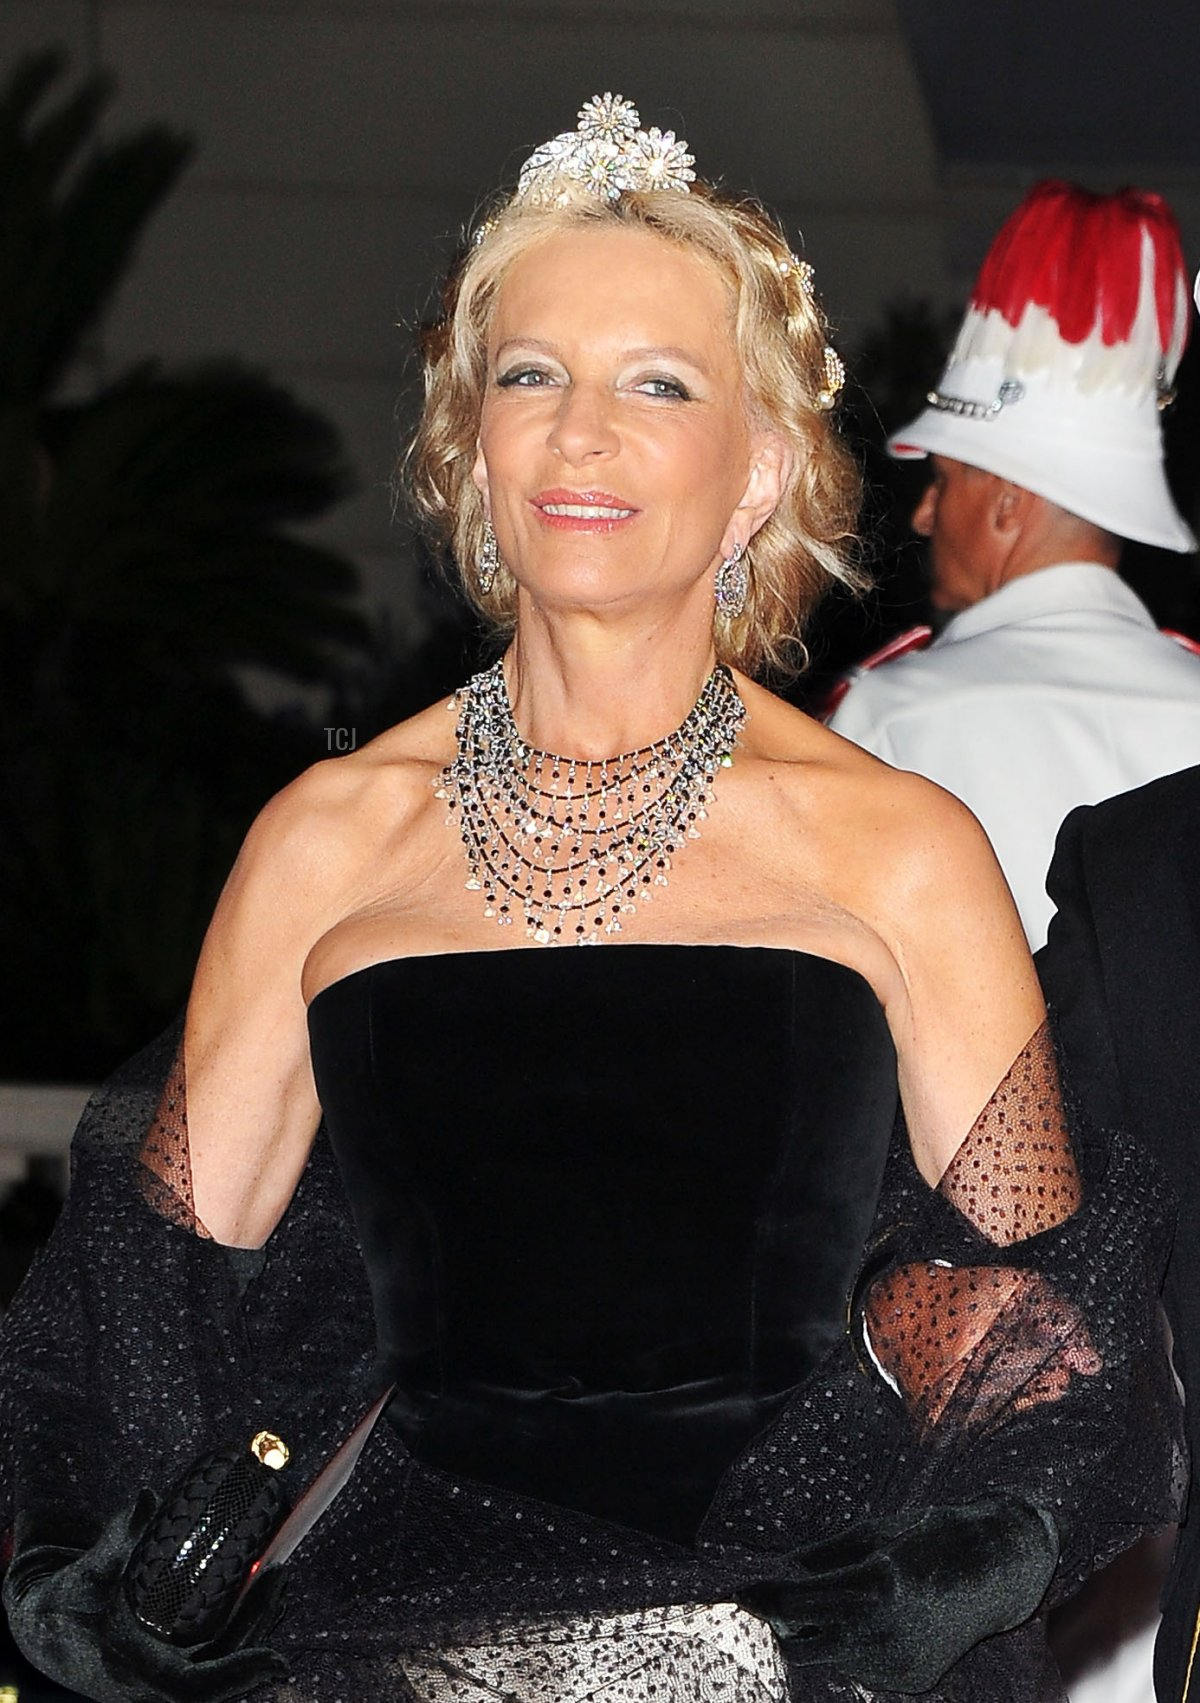 Princess and Prince Michael of Kent attends a dinner at Opera terraces after the religious wedding ceremony of Prince Albert II of Monaco and Princess Charlene of Monaco on July 2, 2011 in Monaco